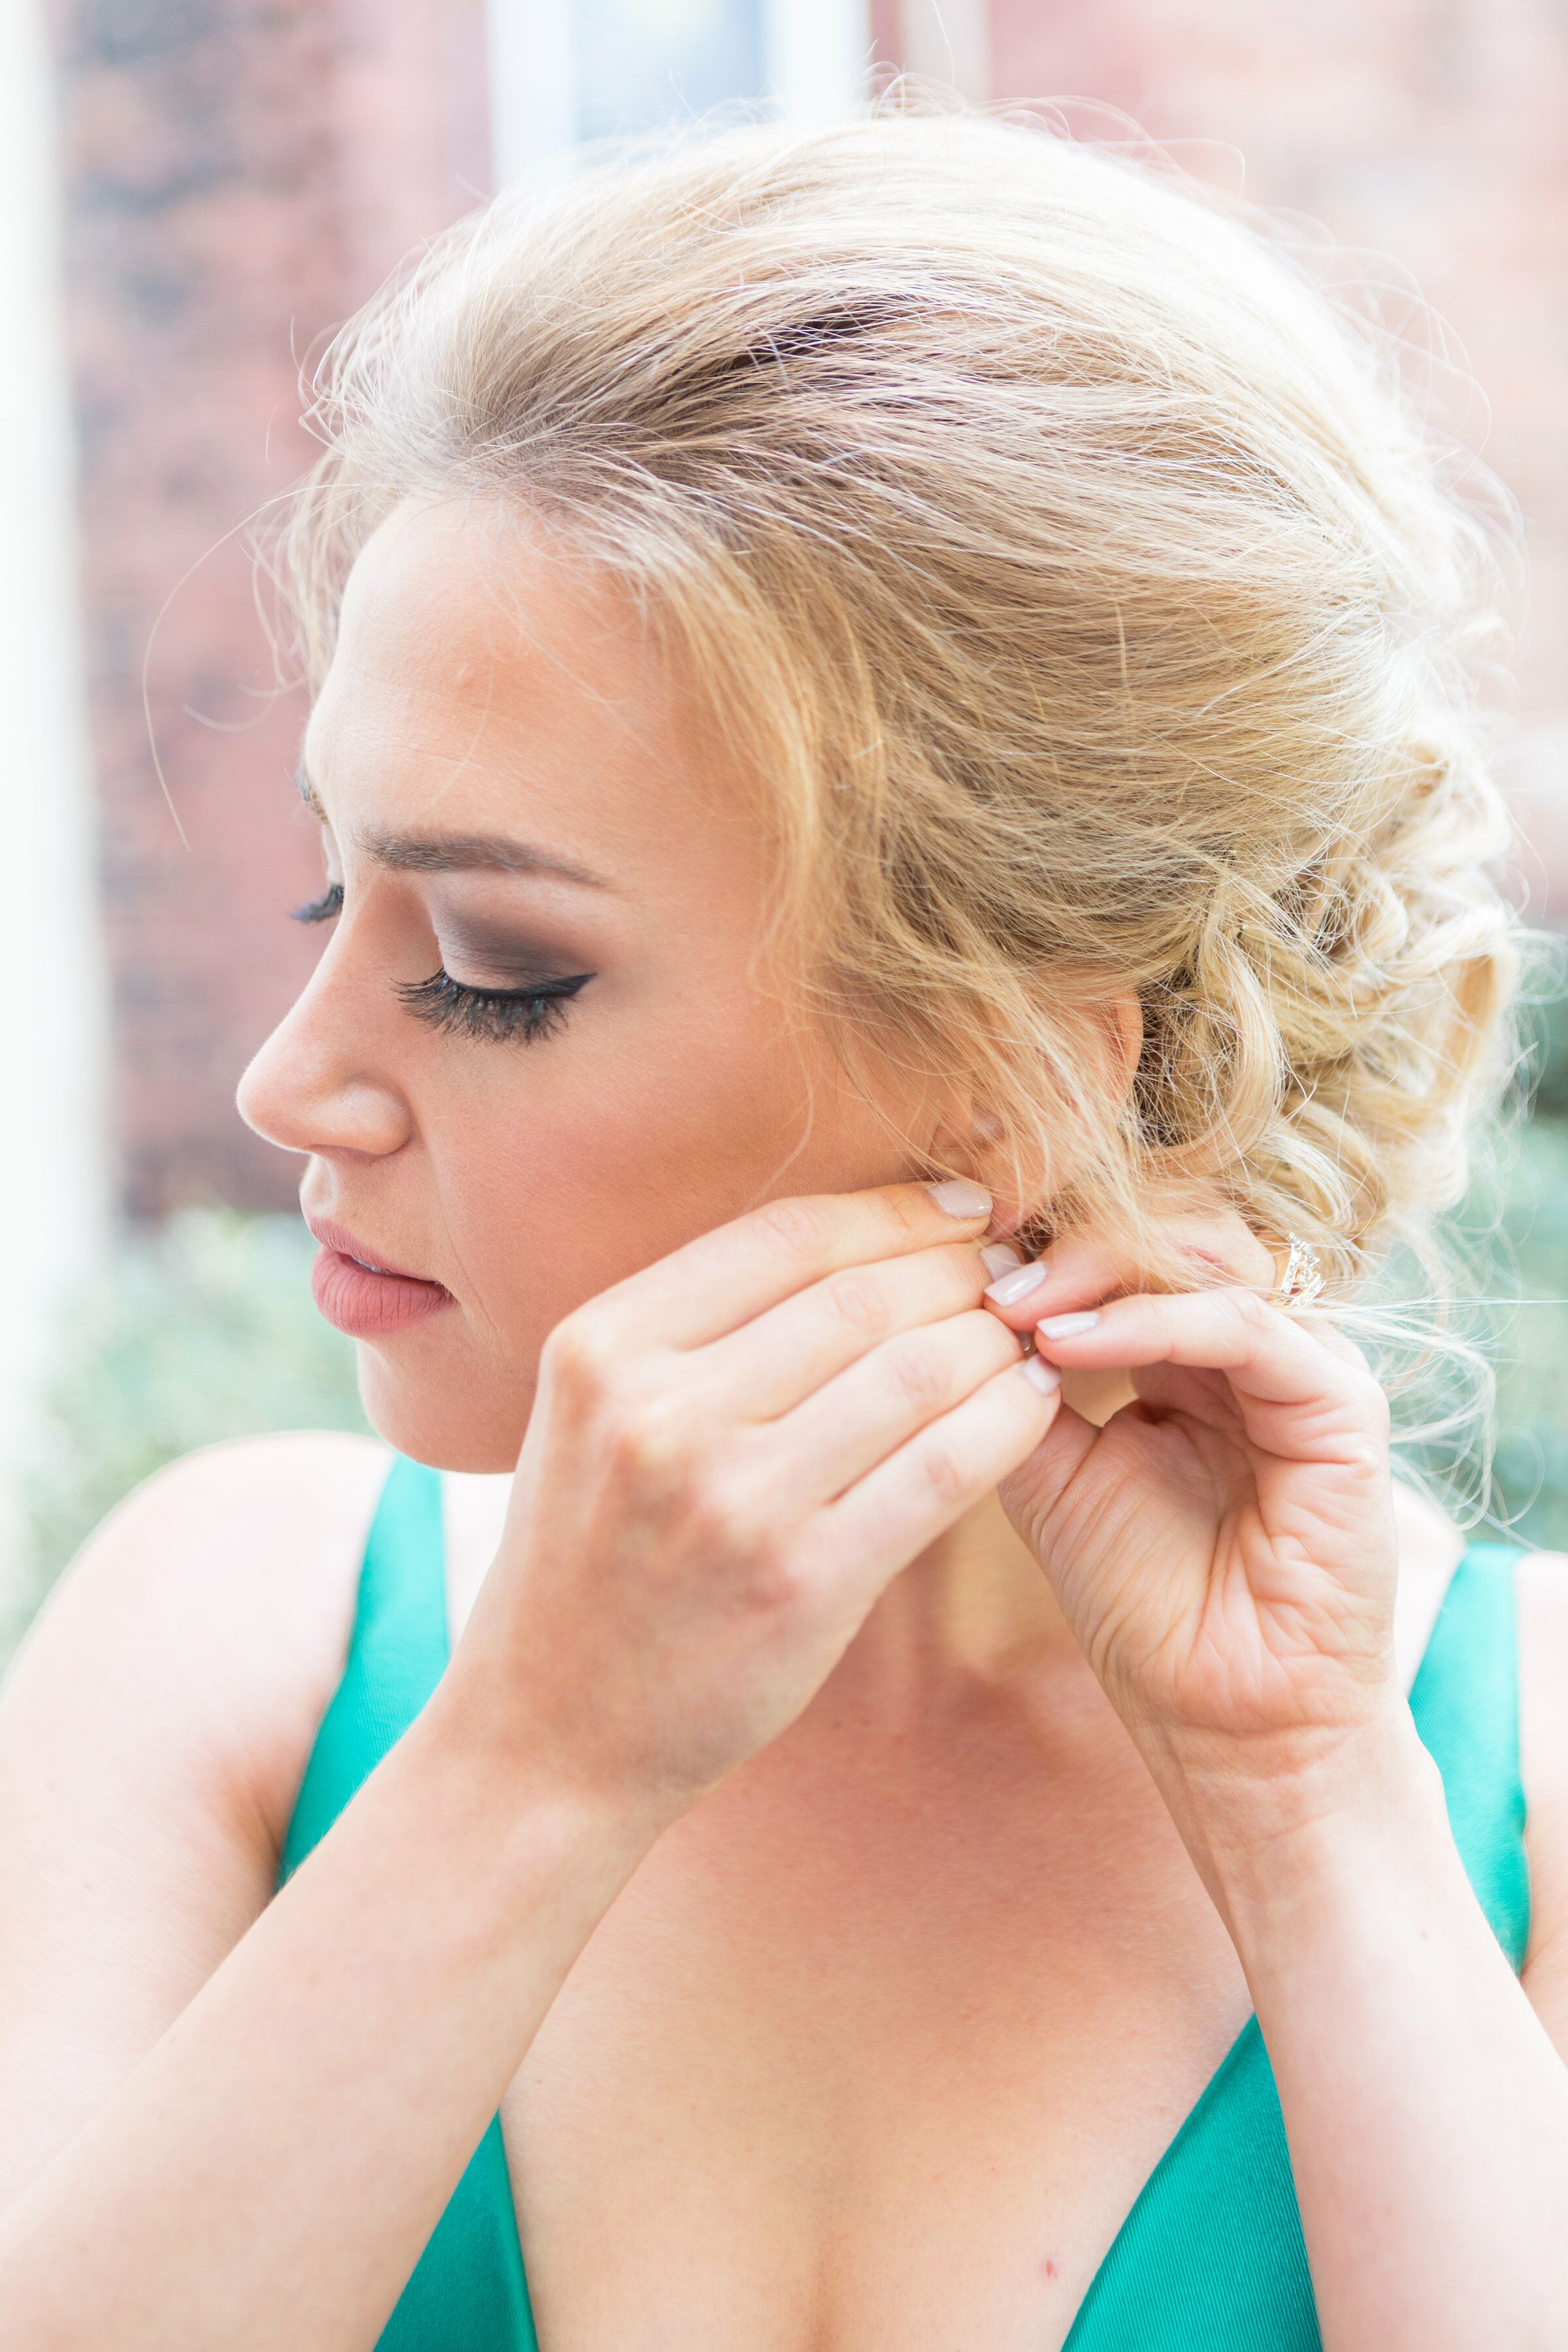 beauty salons in rockville, md - the knot